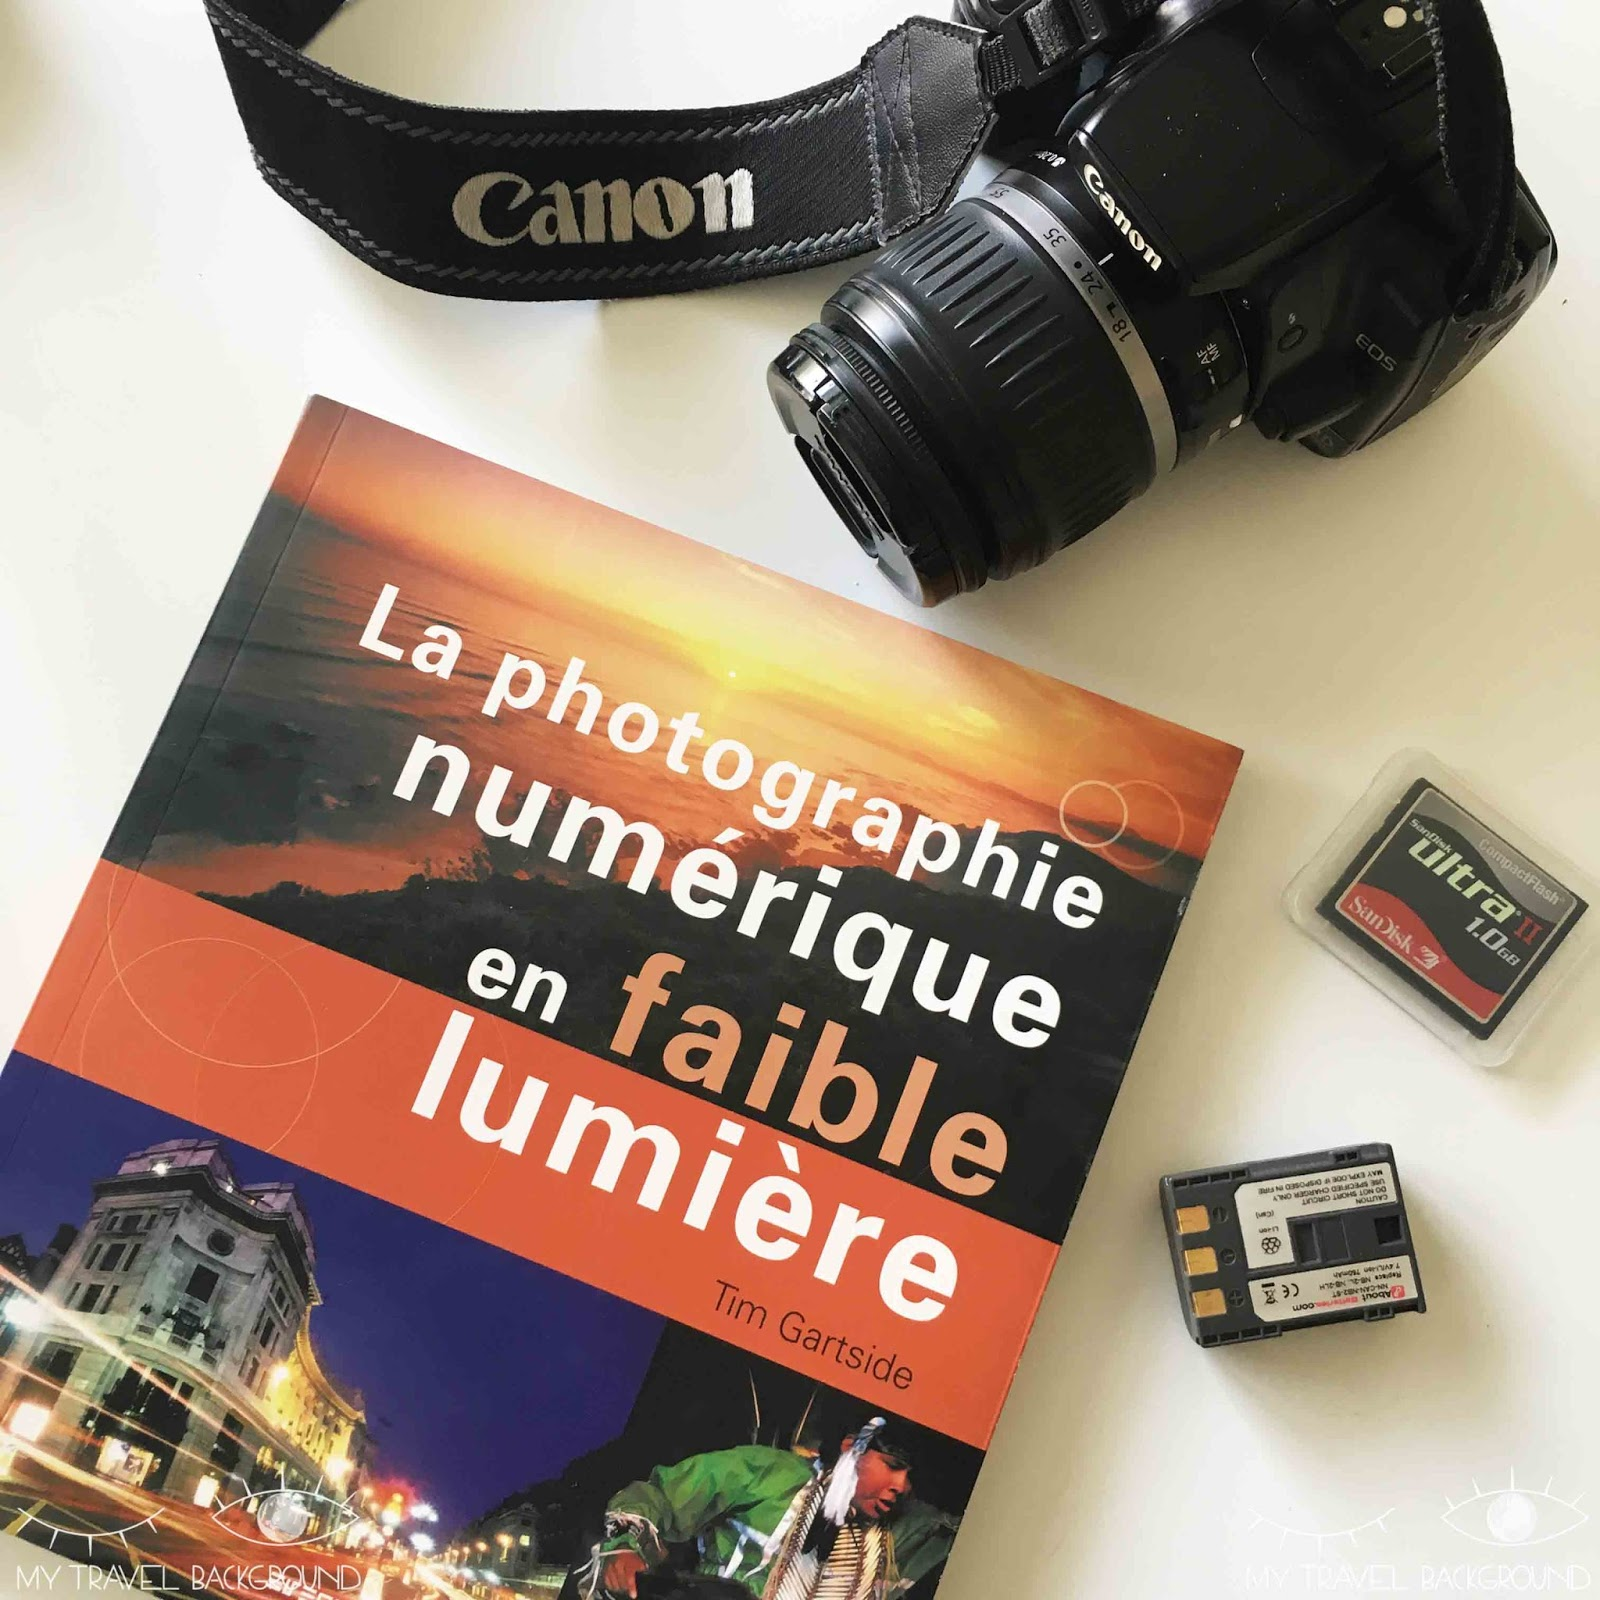 My Travel Background : 11 conseils photos pour les débutants